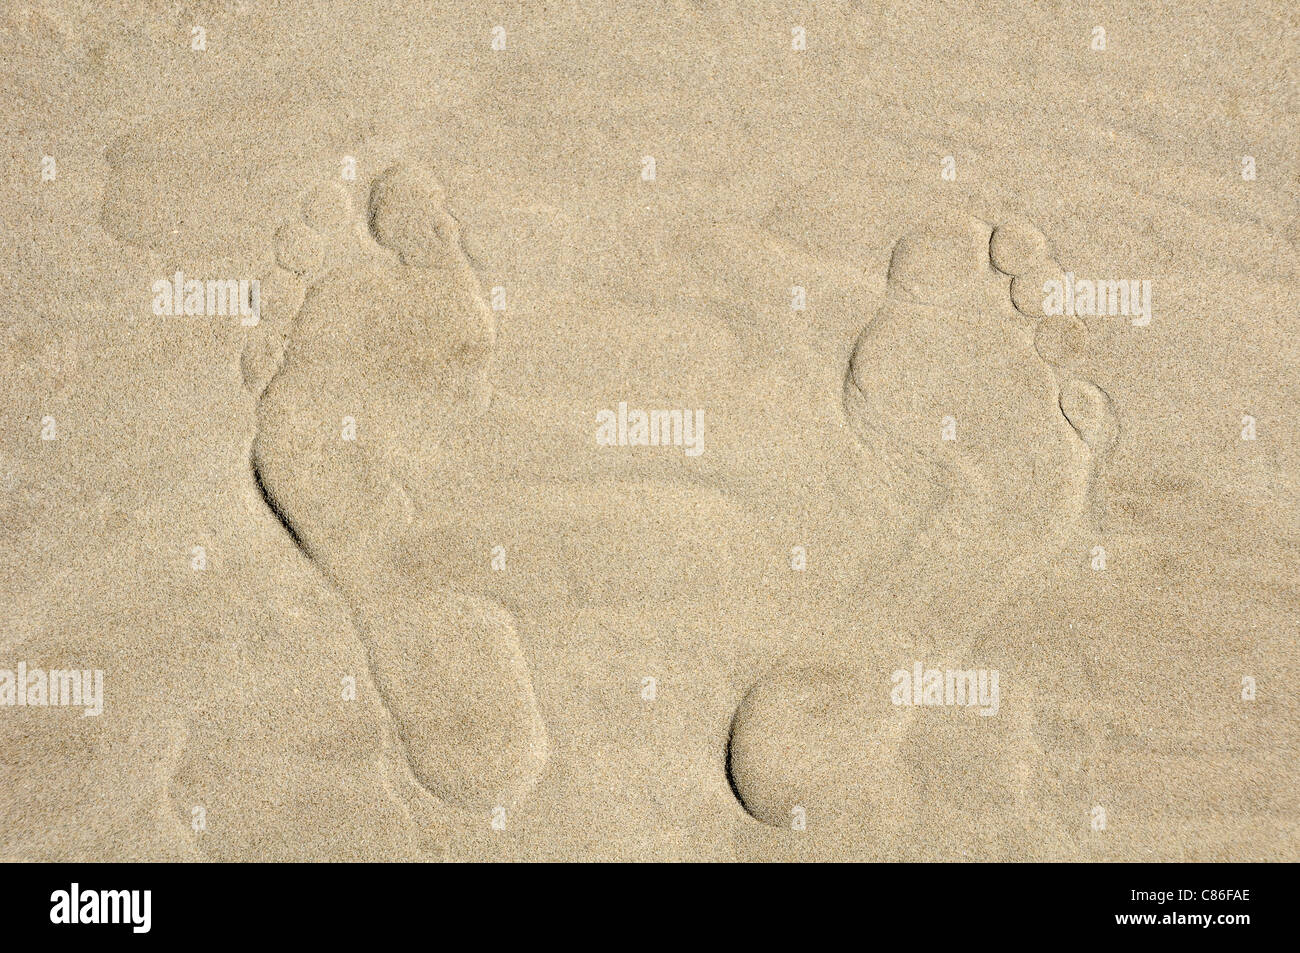 golden sand background with two foot prints - Stock Image